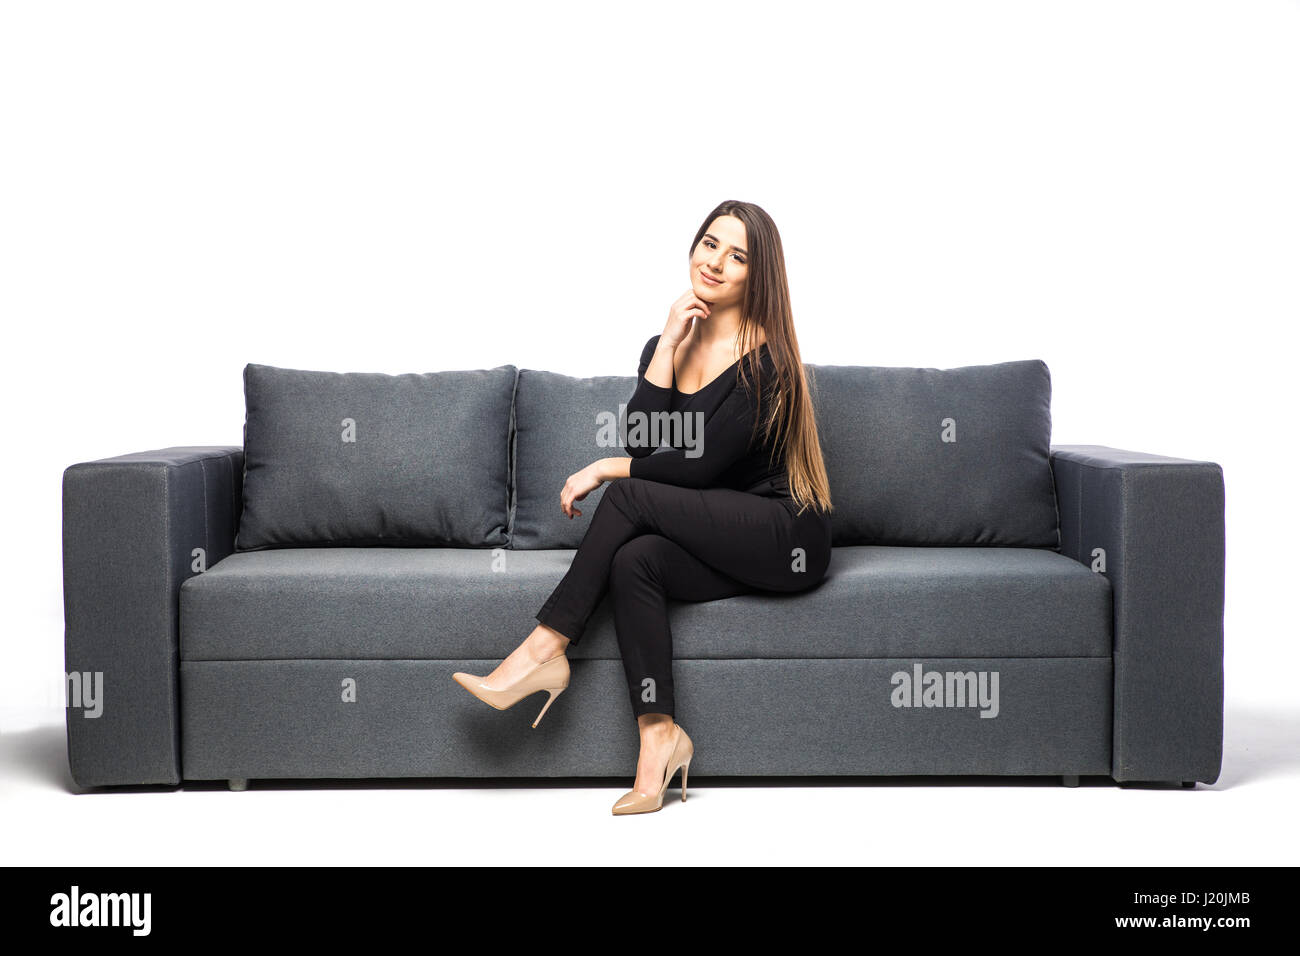 Sensational Woman Sitting On Sofa On White Background Stock Photo Squirreltailoven Fun Painted Chair Ideas Images Squirreltailovenorg